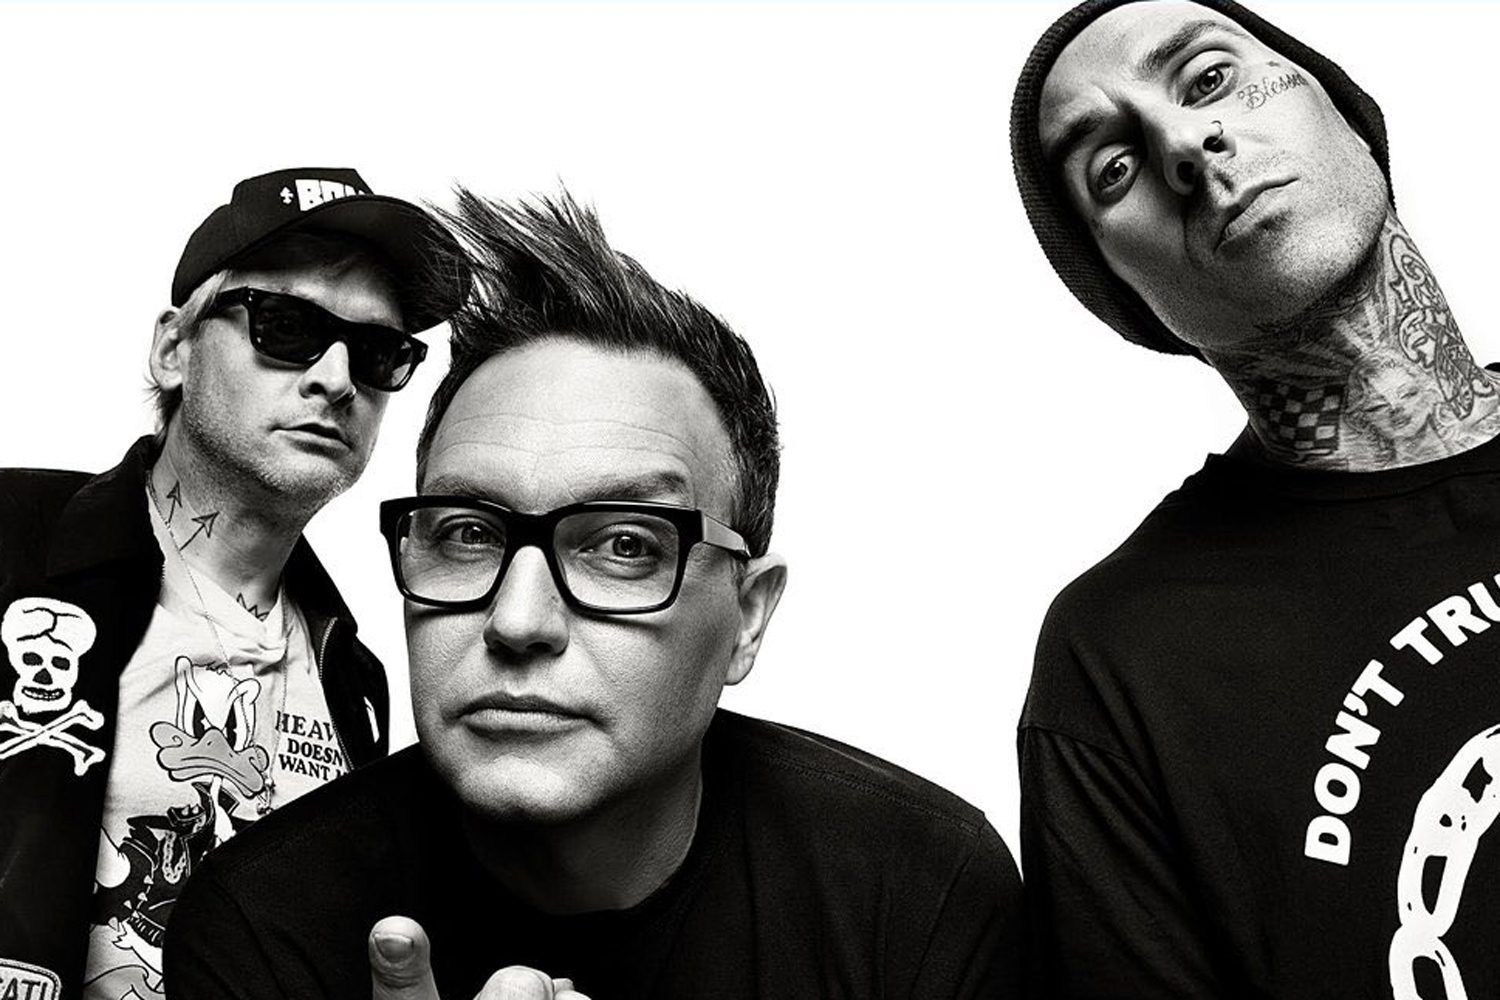 It looks like blink-182 are dropping a new track today